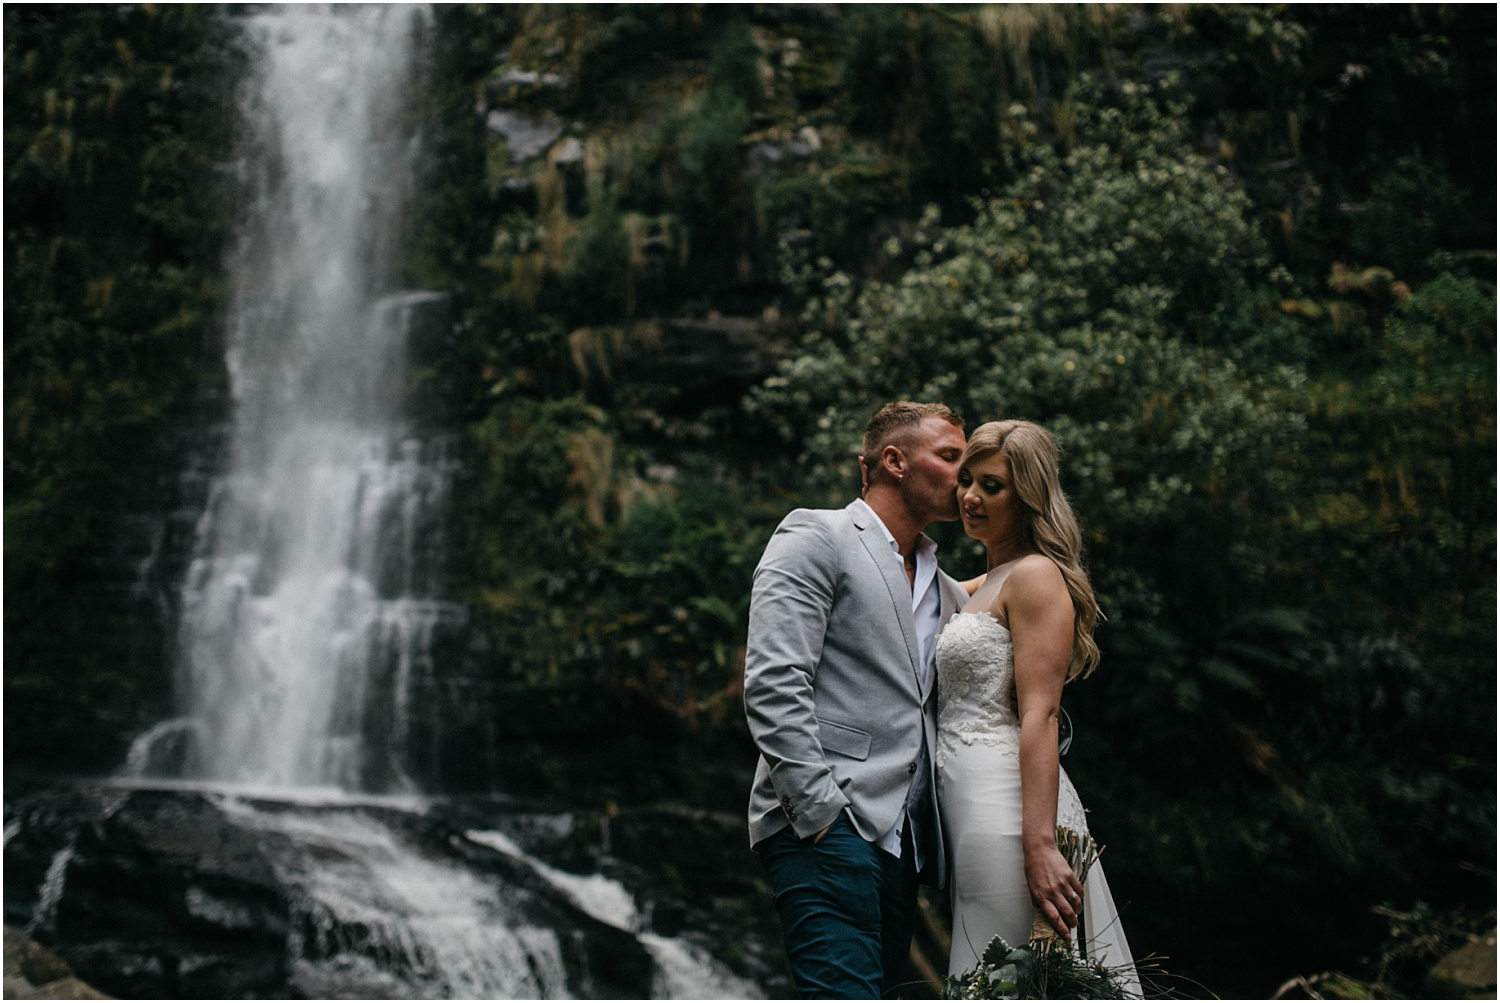 Renee and Ash's real elopement in Lorne on the Great Ocean Roadwith the ceremony at erskin falls._0092.jpg